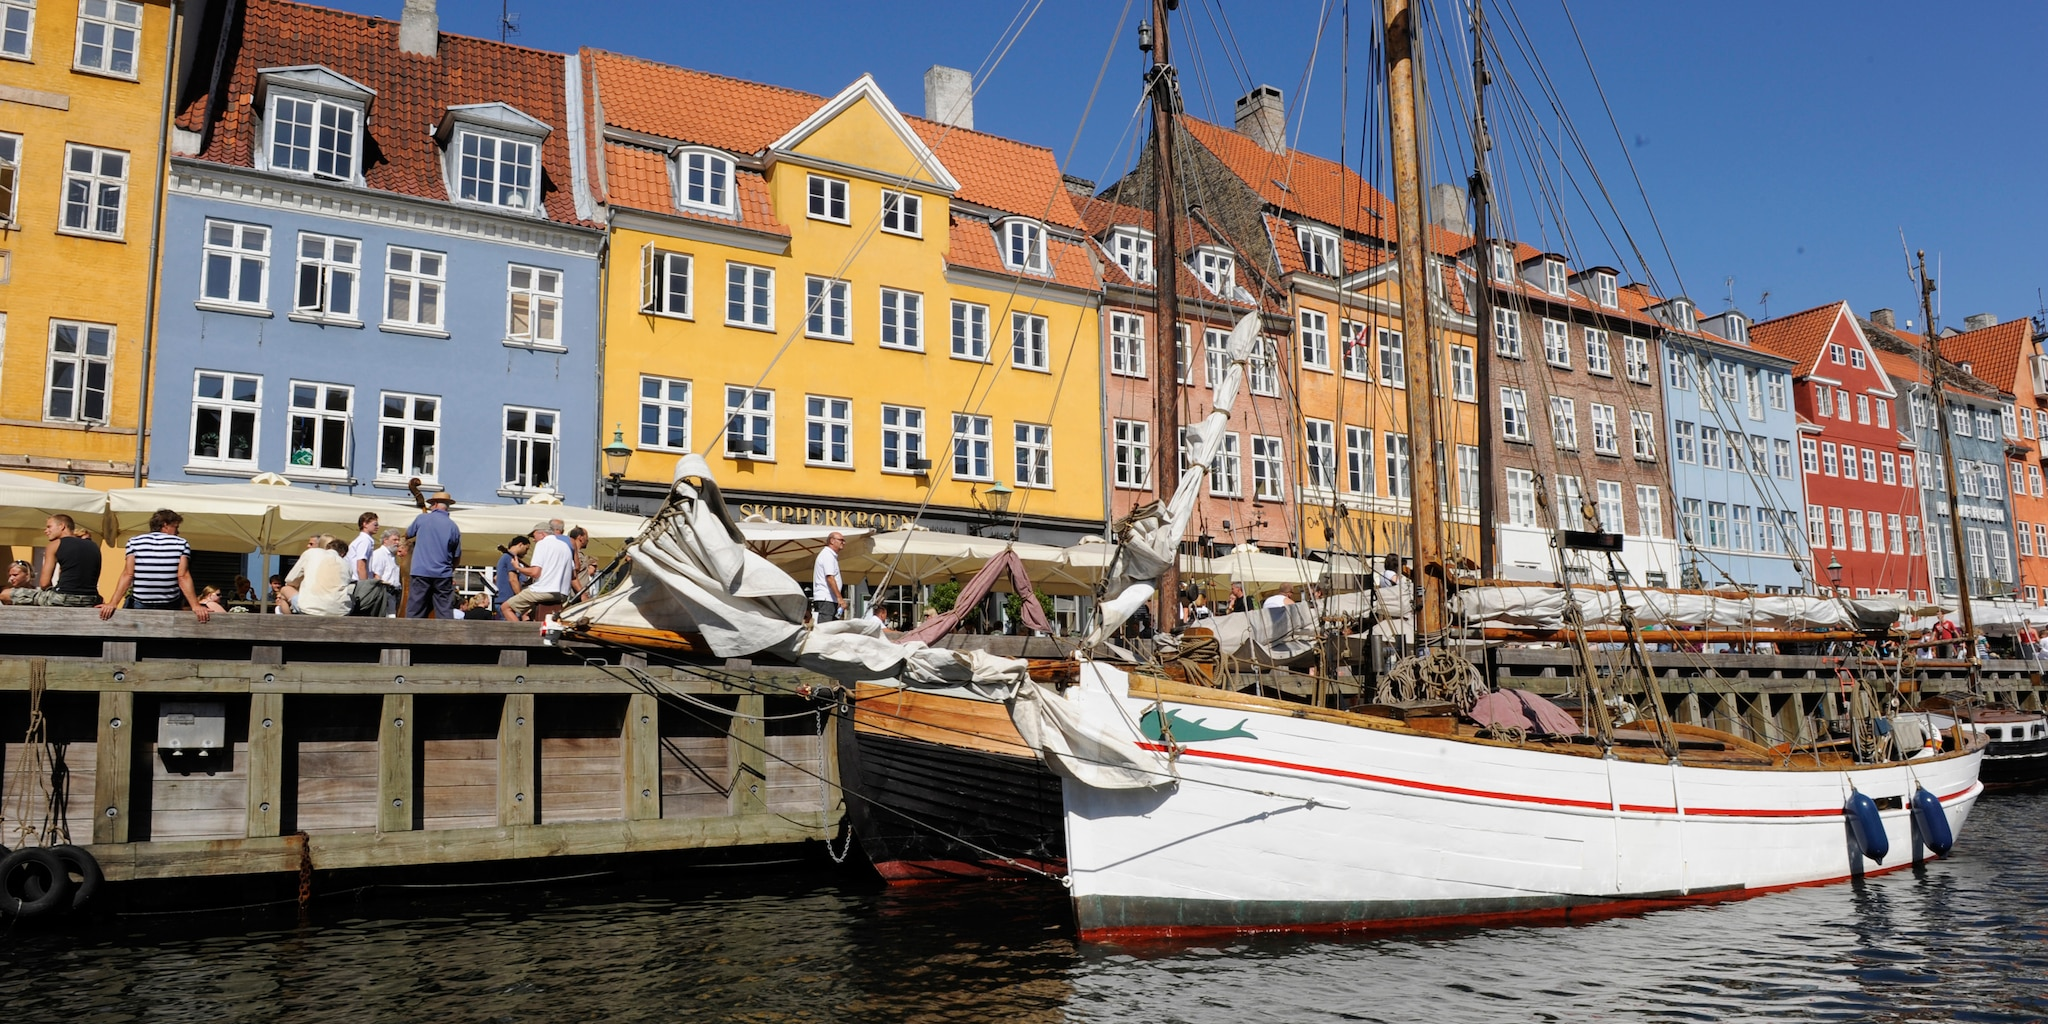 A boat docked at the Copenhagen harbor near European row houses